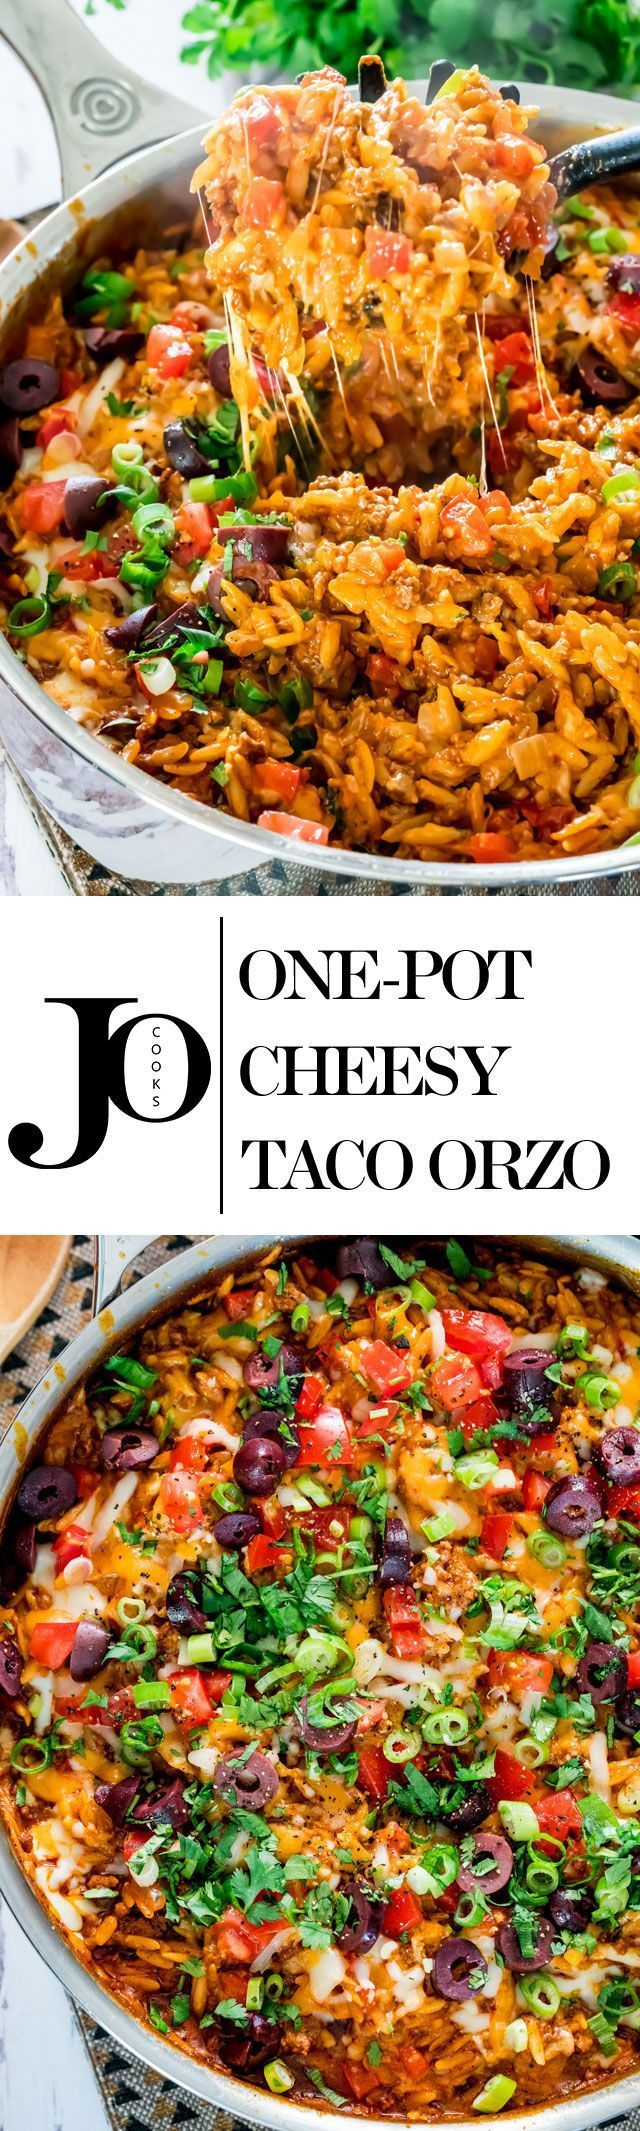 894 best quick easy recipes images on pinterest cooking food one pot cheesy taco orzo picture the yumminess with this quick and delicious pot of perfect comfort food ready in 30 minutes enjoy a big bowl of cheesy forumfinder Images